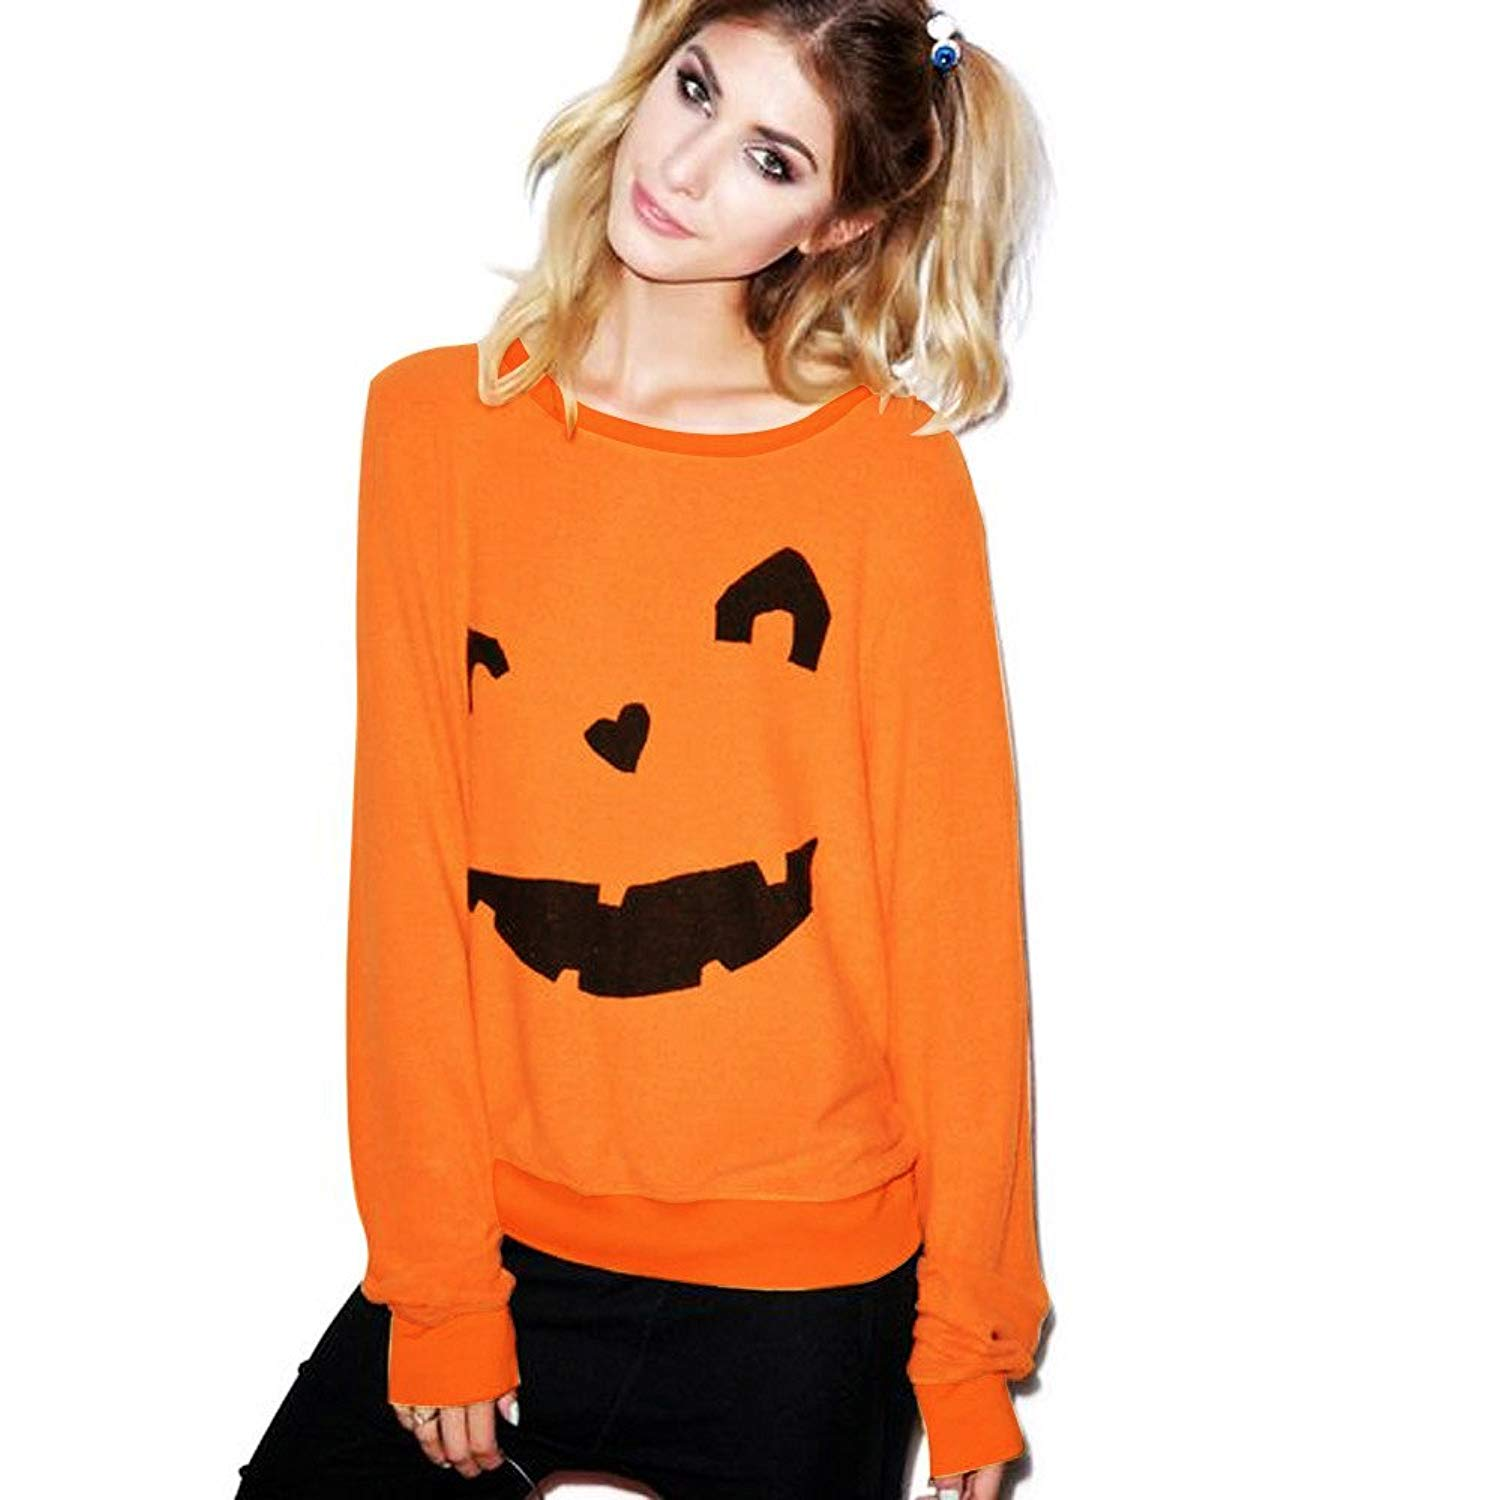 POTO Halloween Sweatshirt,Women Halloween Pumpkin Costume Long Sleeve Pullover Shirt Jumper Tops Blouse T-Shirts